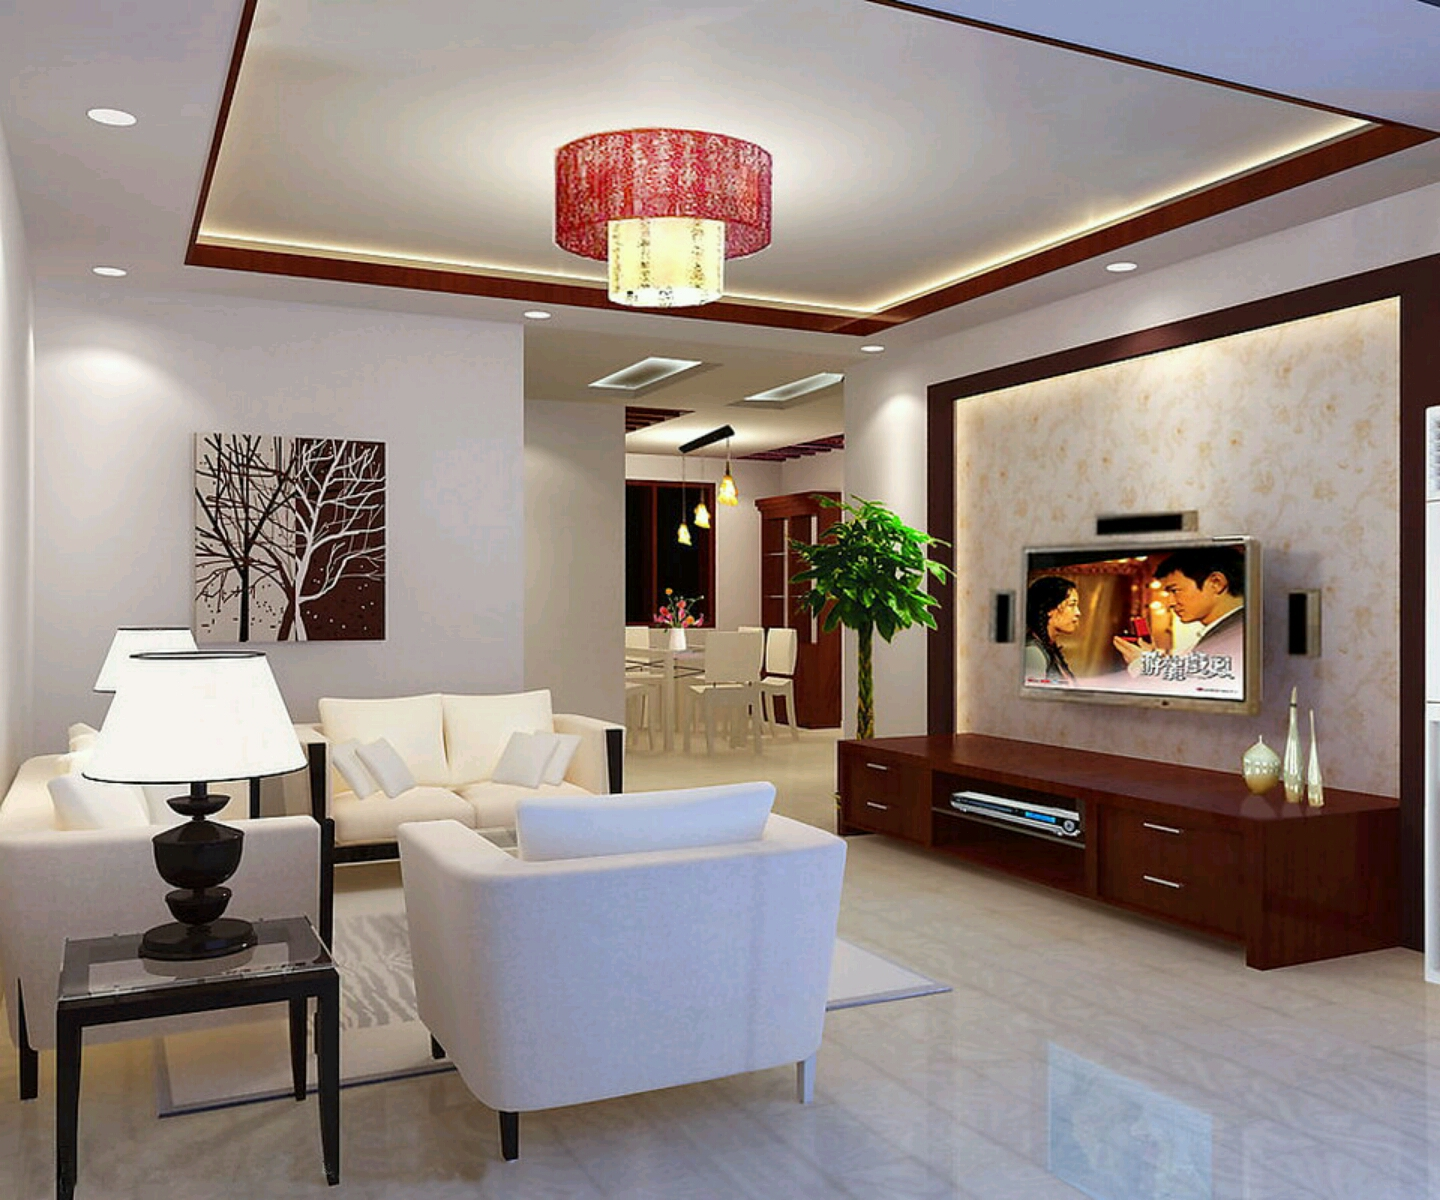 Best interior design house for New design interior living room